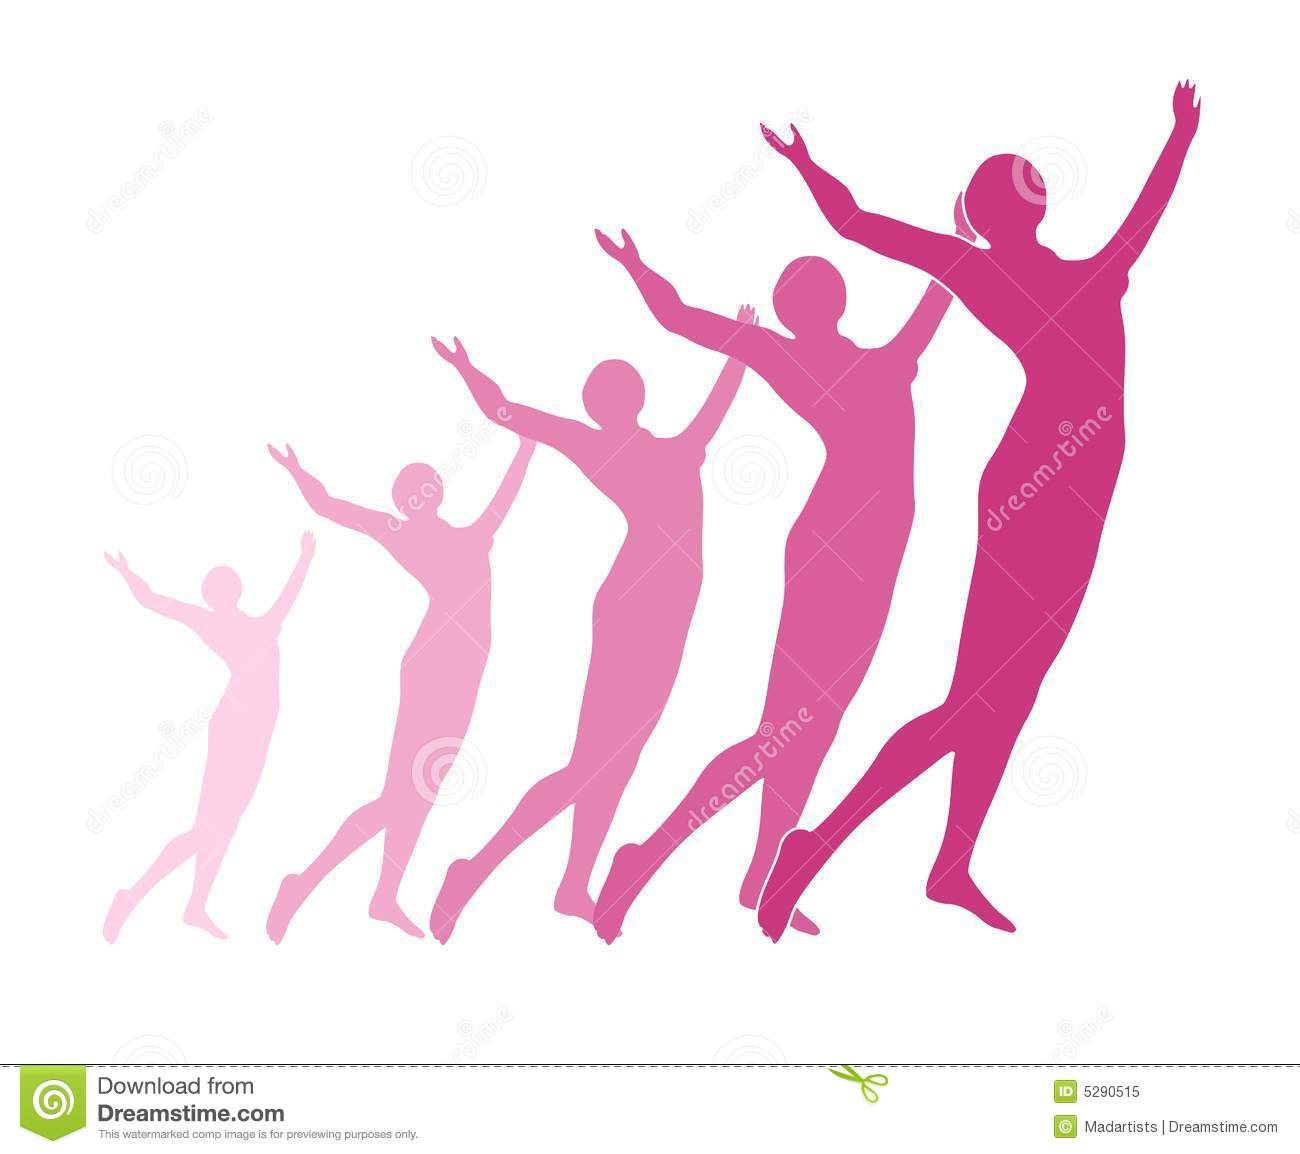 Celebration Or Fitness Silhouette Royalty Free Stock Photo.